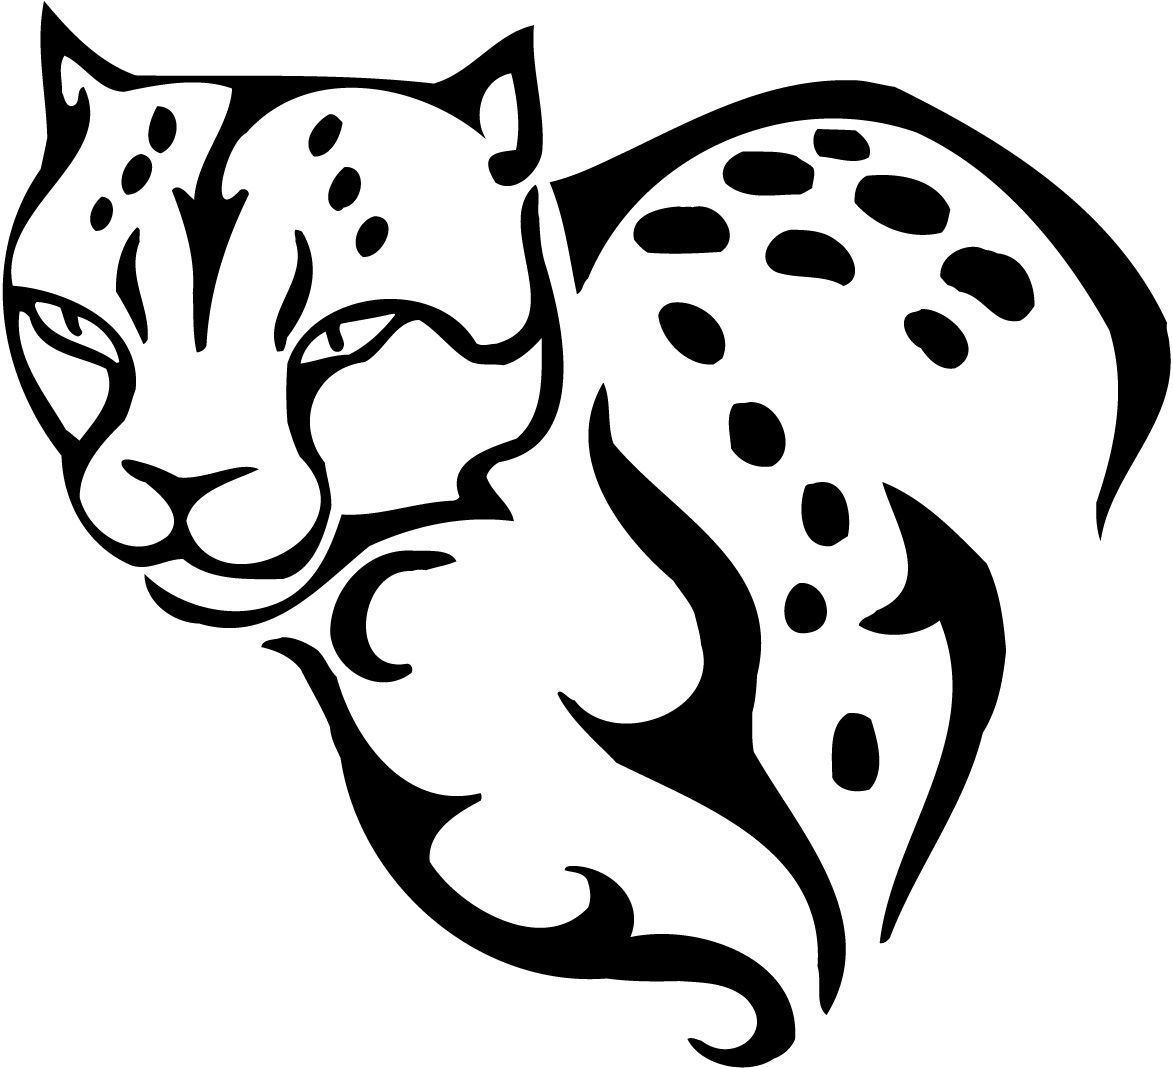 Big Cheetah Printable Pages For Kids